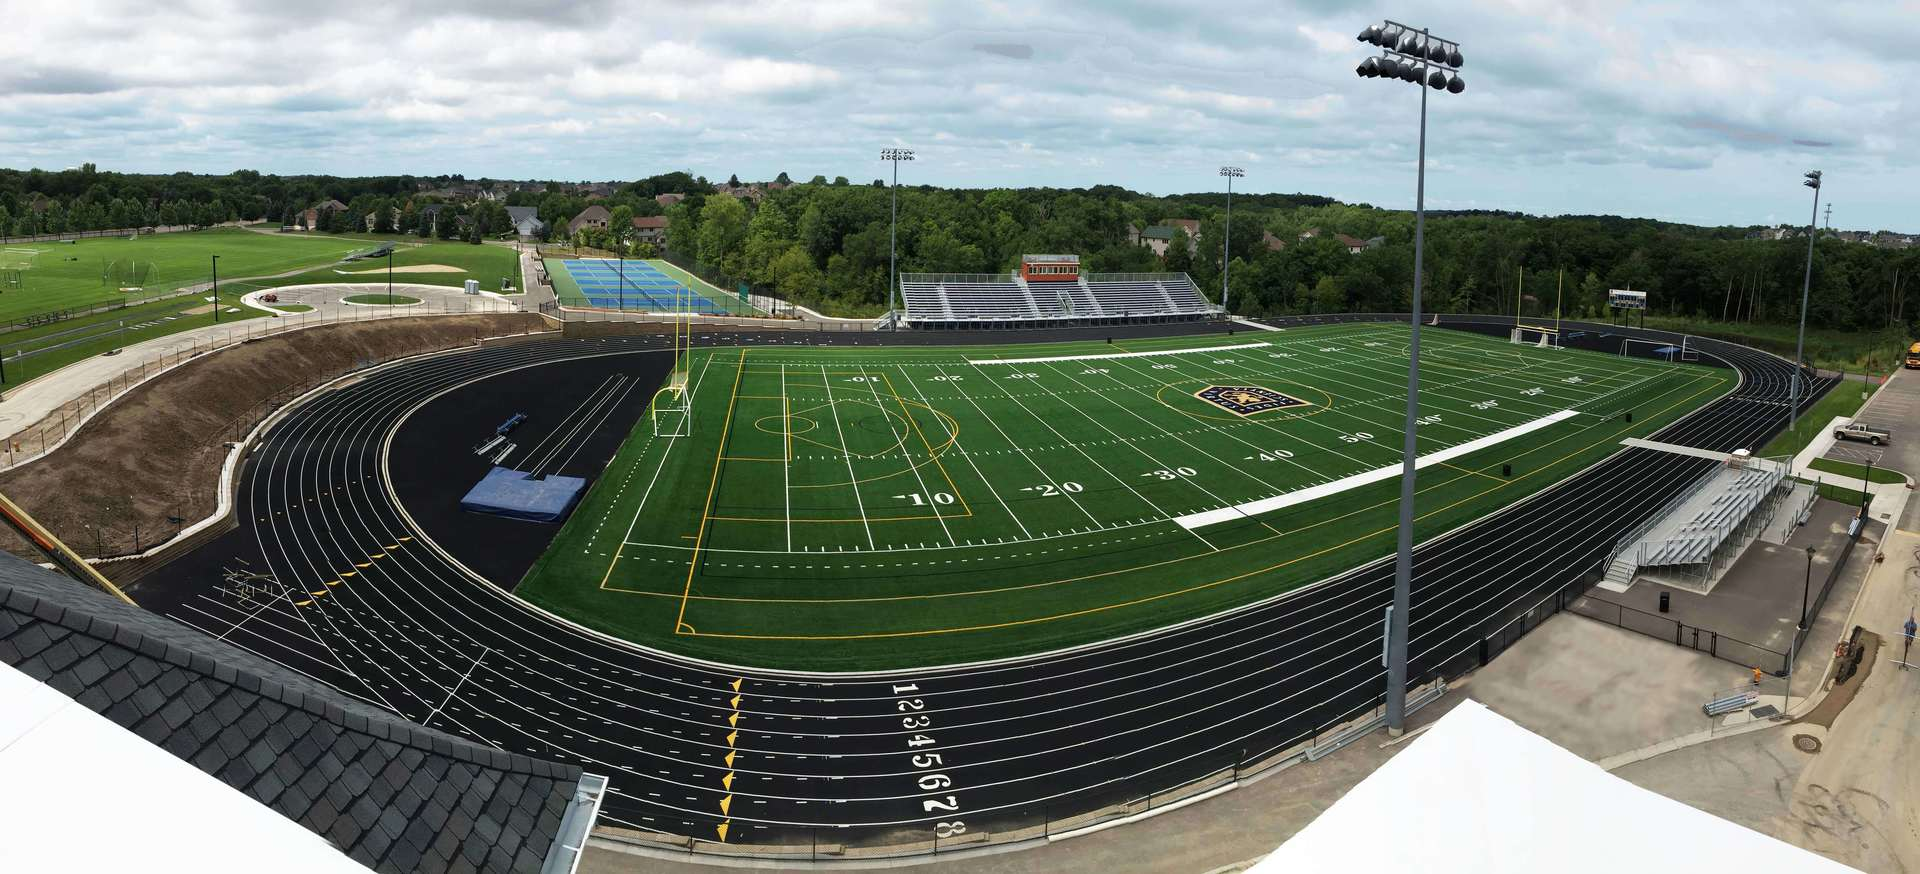 The new track and field at Providence Academy in Plymouth, Minnesota, by Stahl.